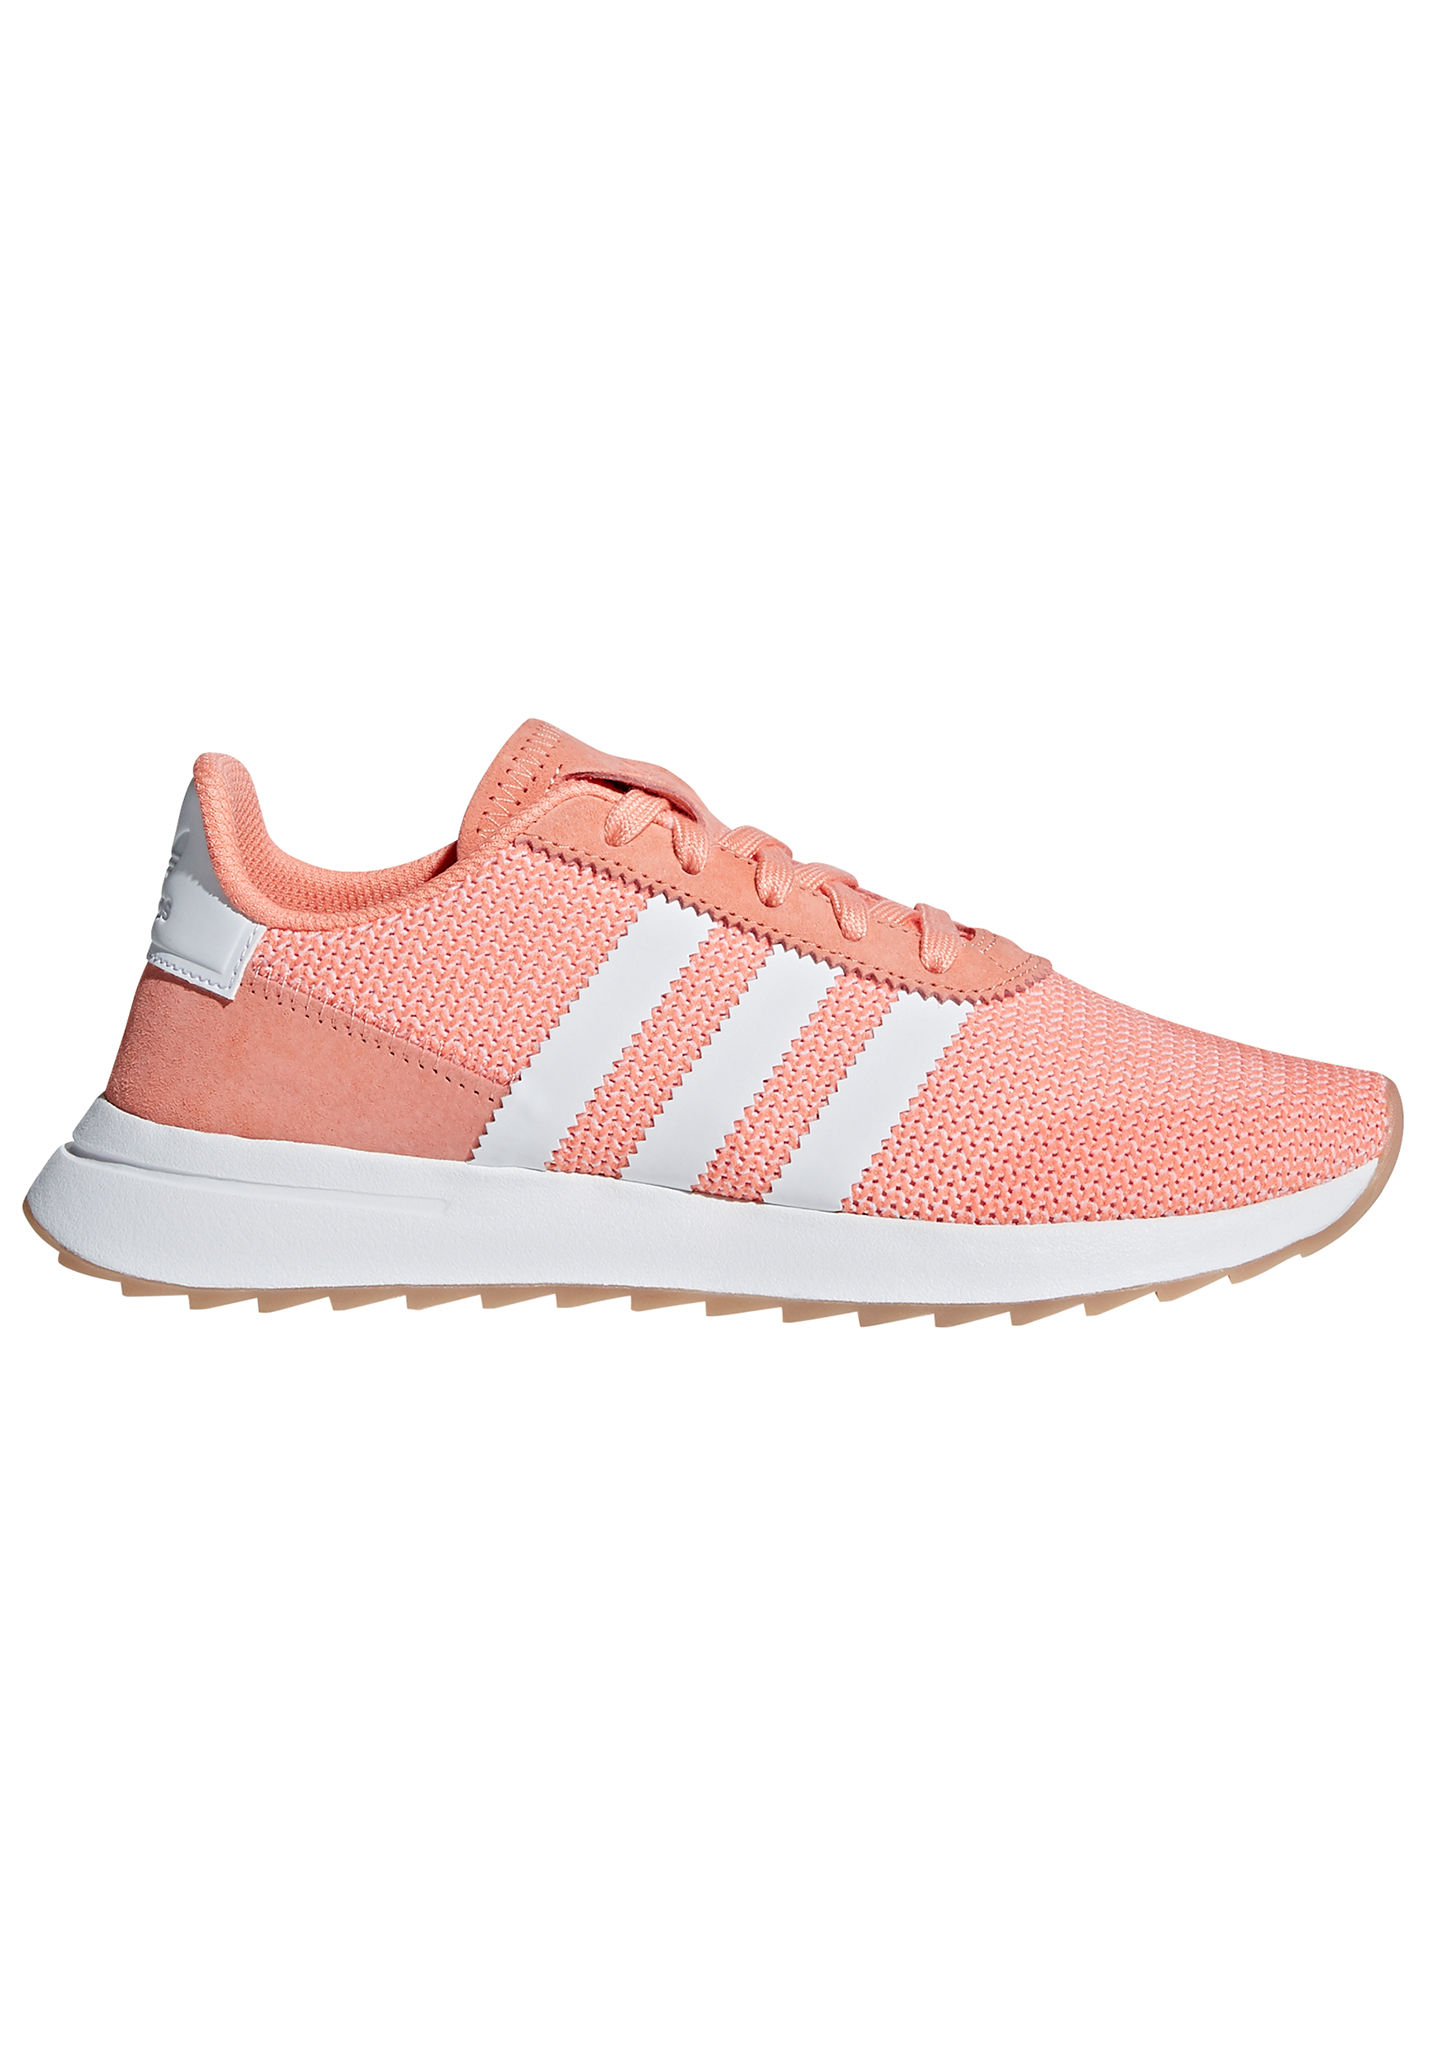 adidas Originals Flb_Runner Sneaker für Damen Orange